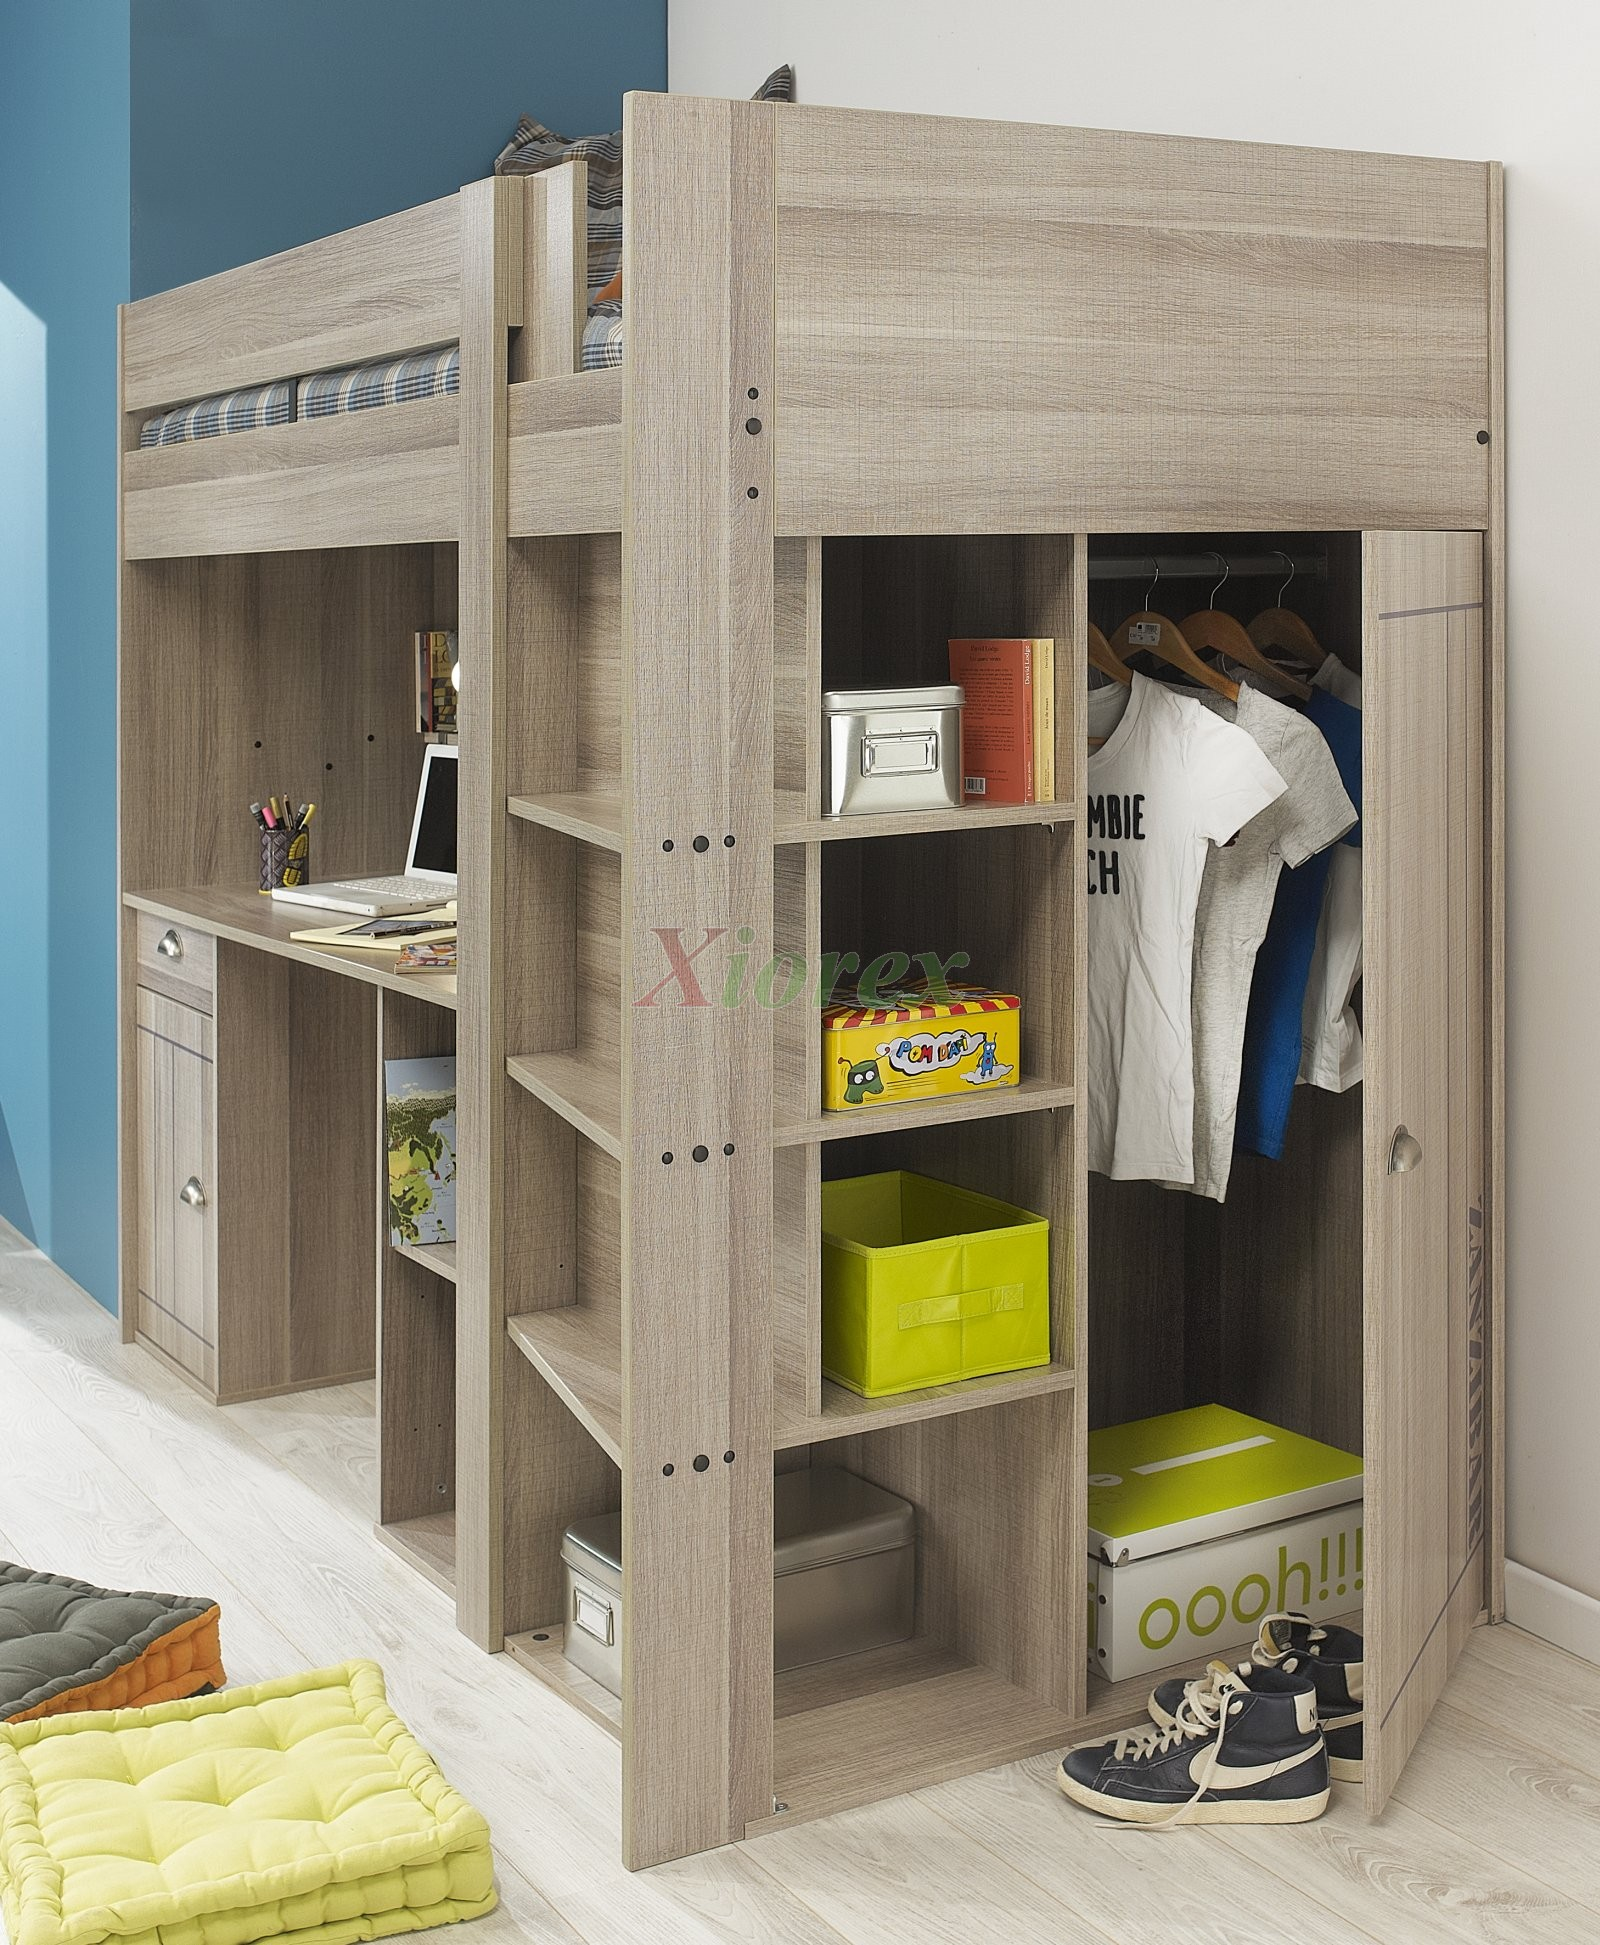 Gami Largo Loft Beds For Teens Canada With Desk And Closet